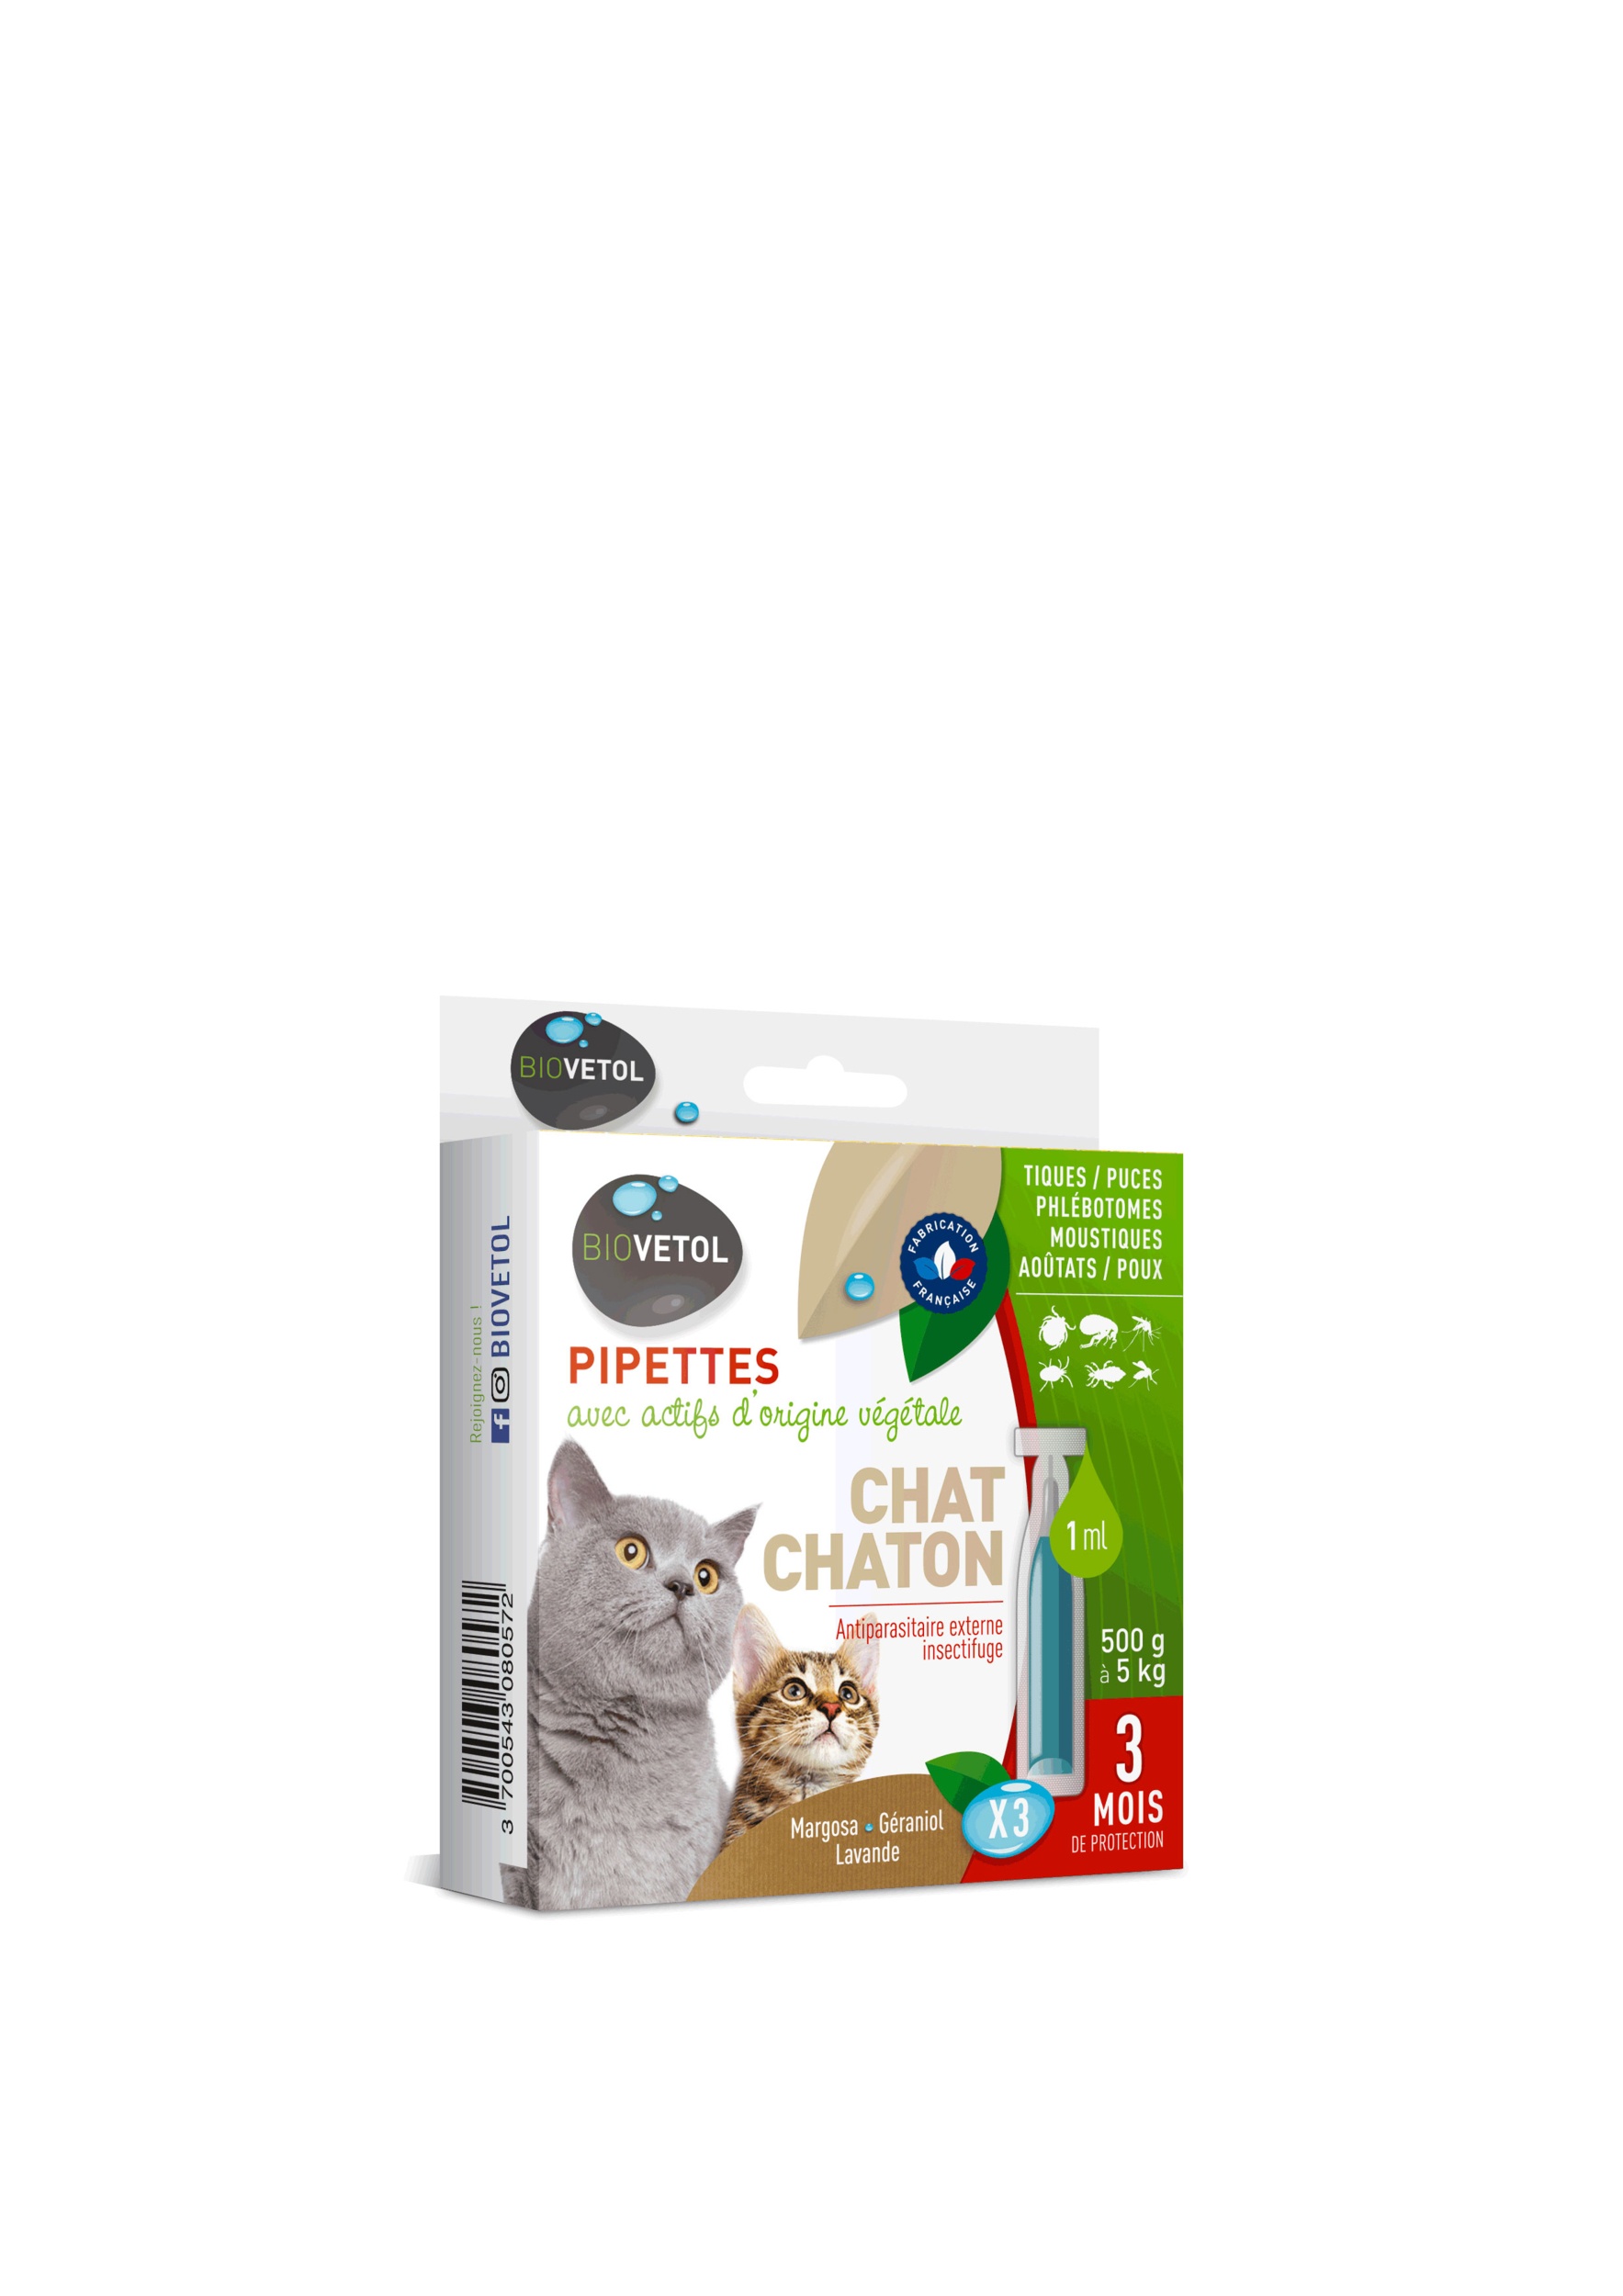 Pipettes antiparasitaire Chats et chatons